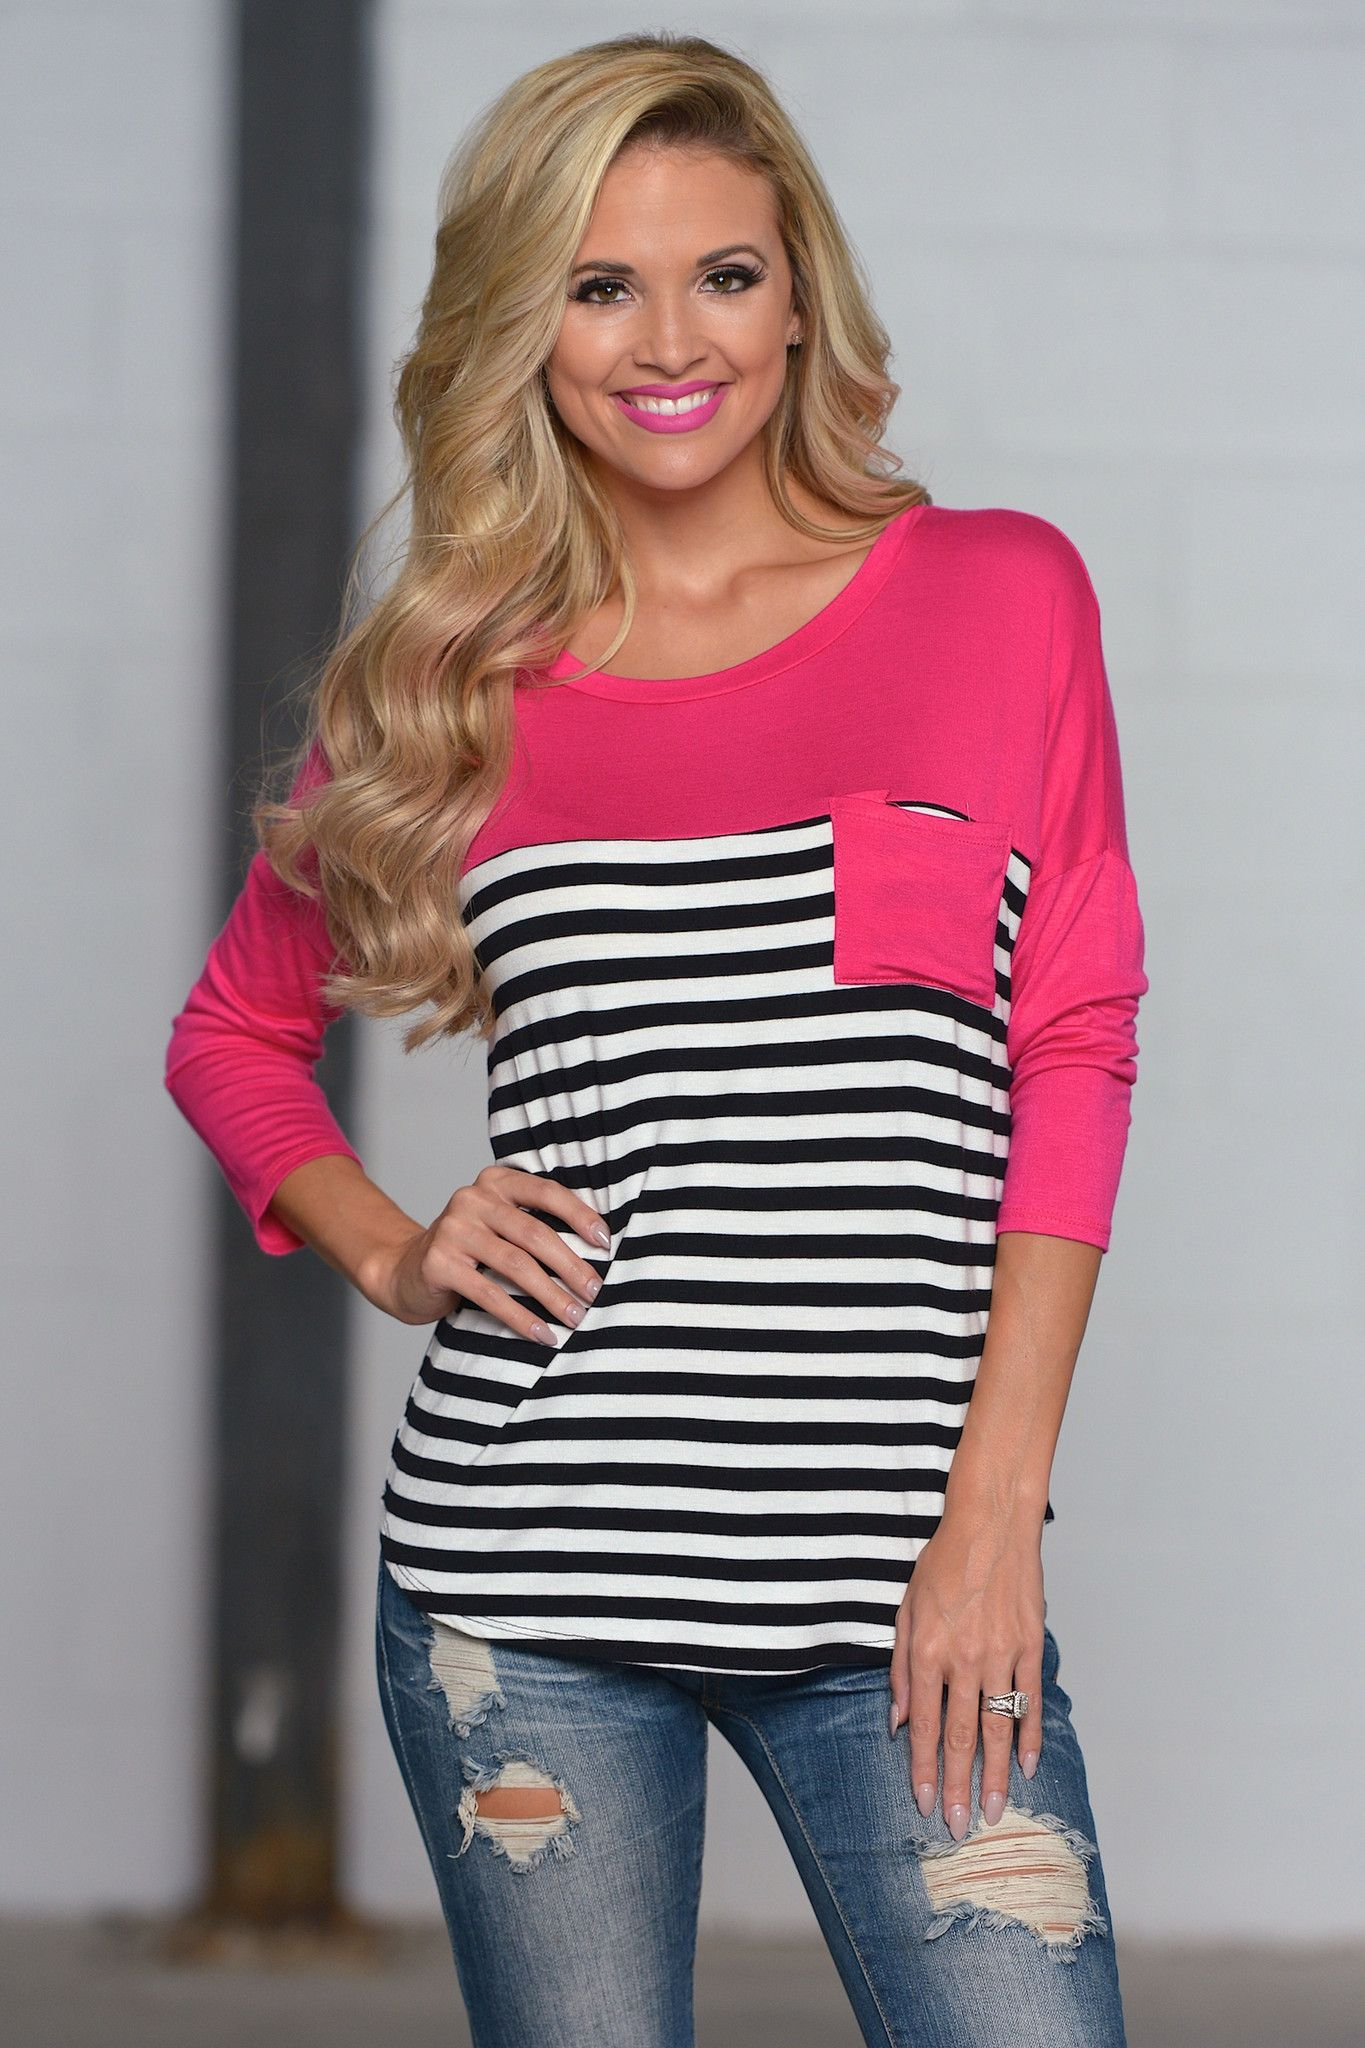 Picnic in the Park Striped Top - Pink from Closet Candy ...